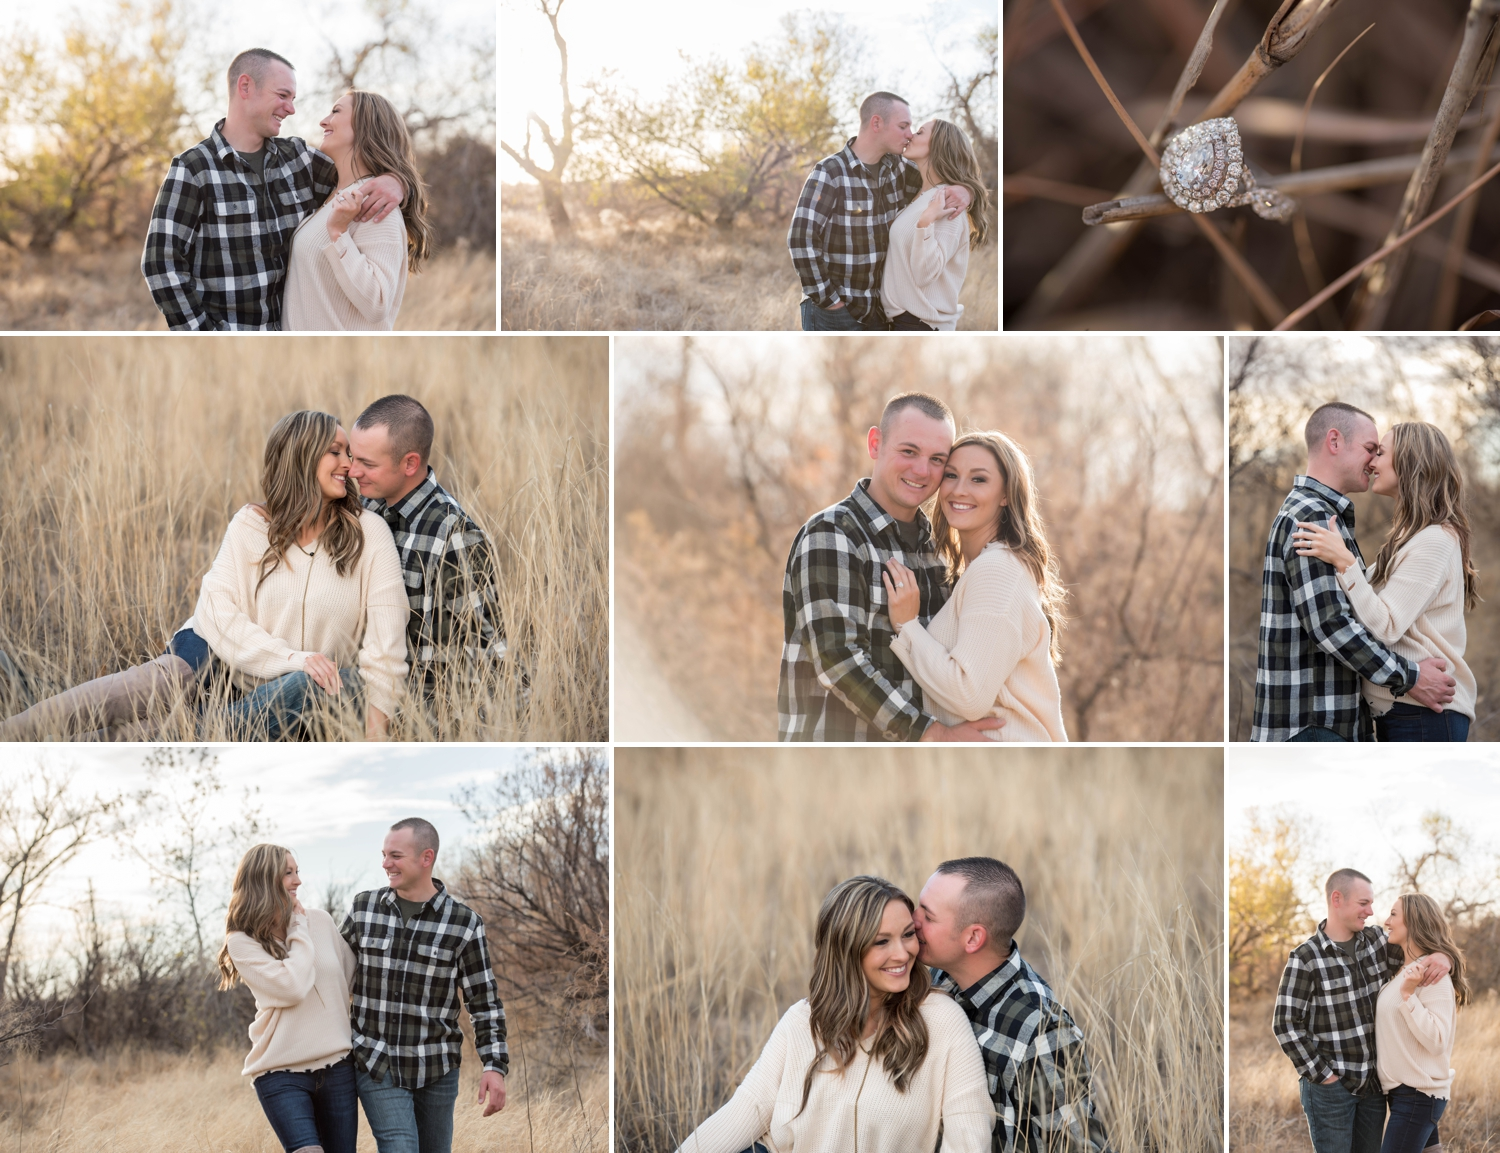 winter engagment photography garden city ks 2.jpg